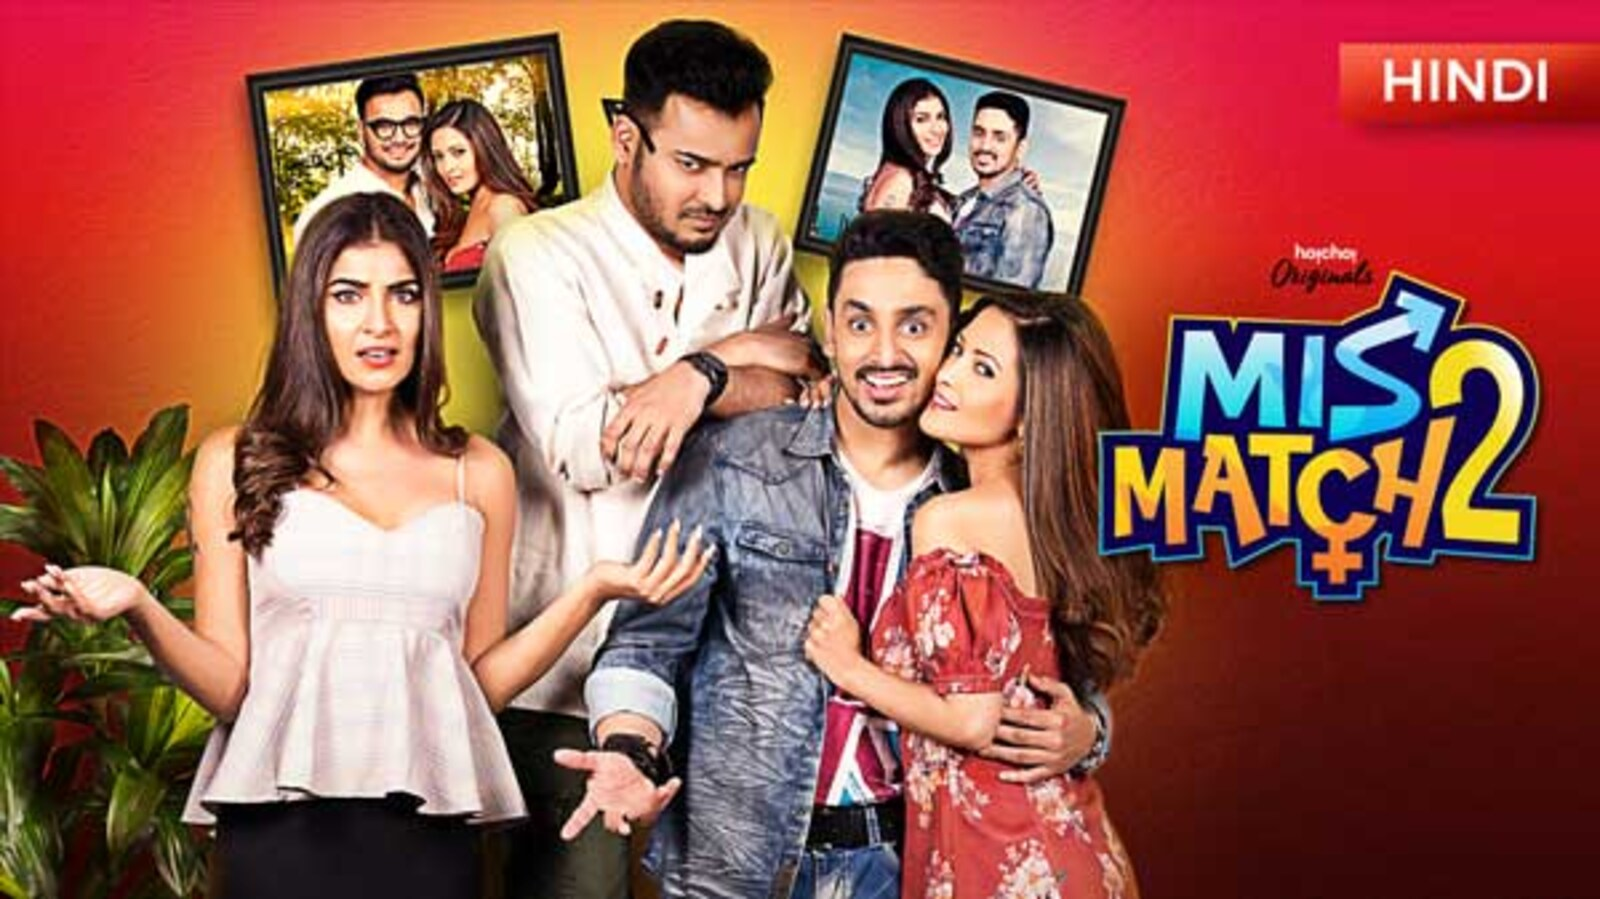 Mismatch (Hindi) | Hoichoi - Movies | Originals